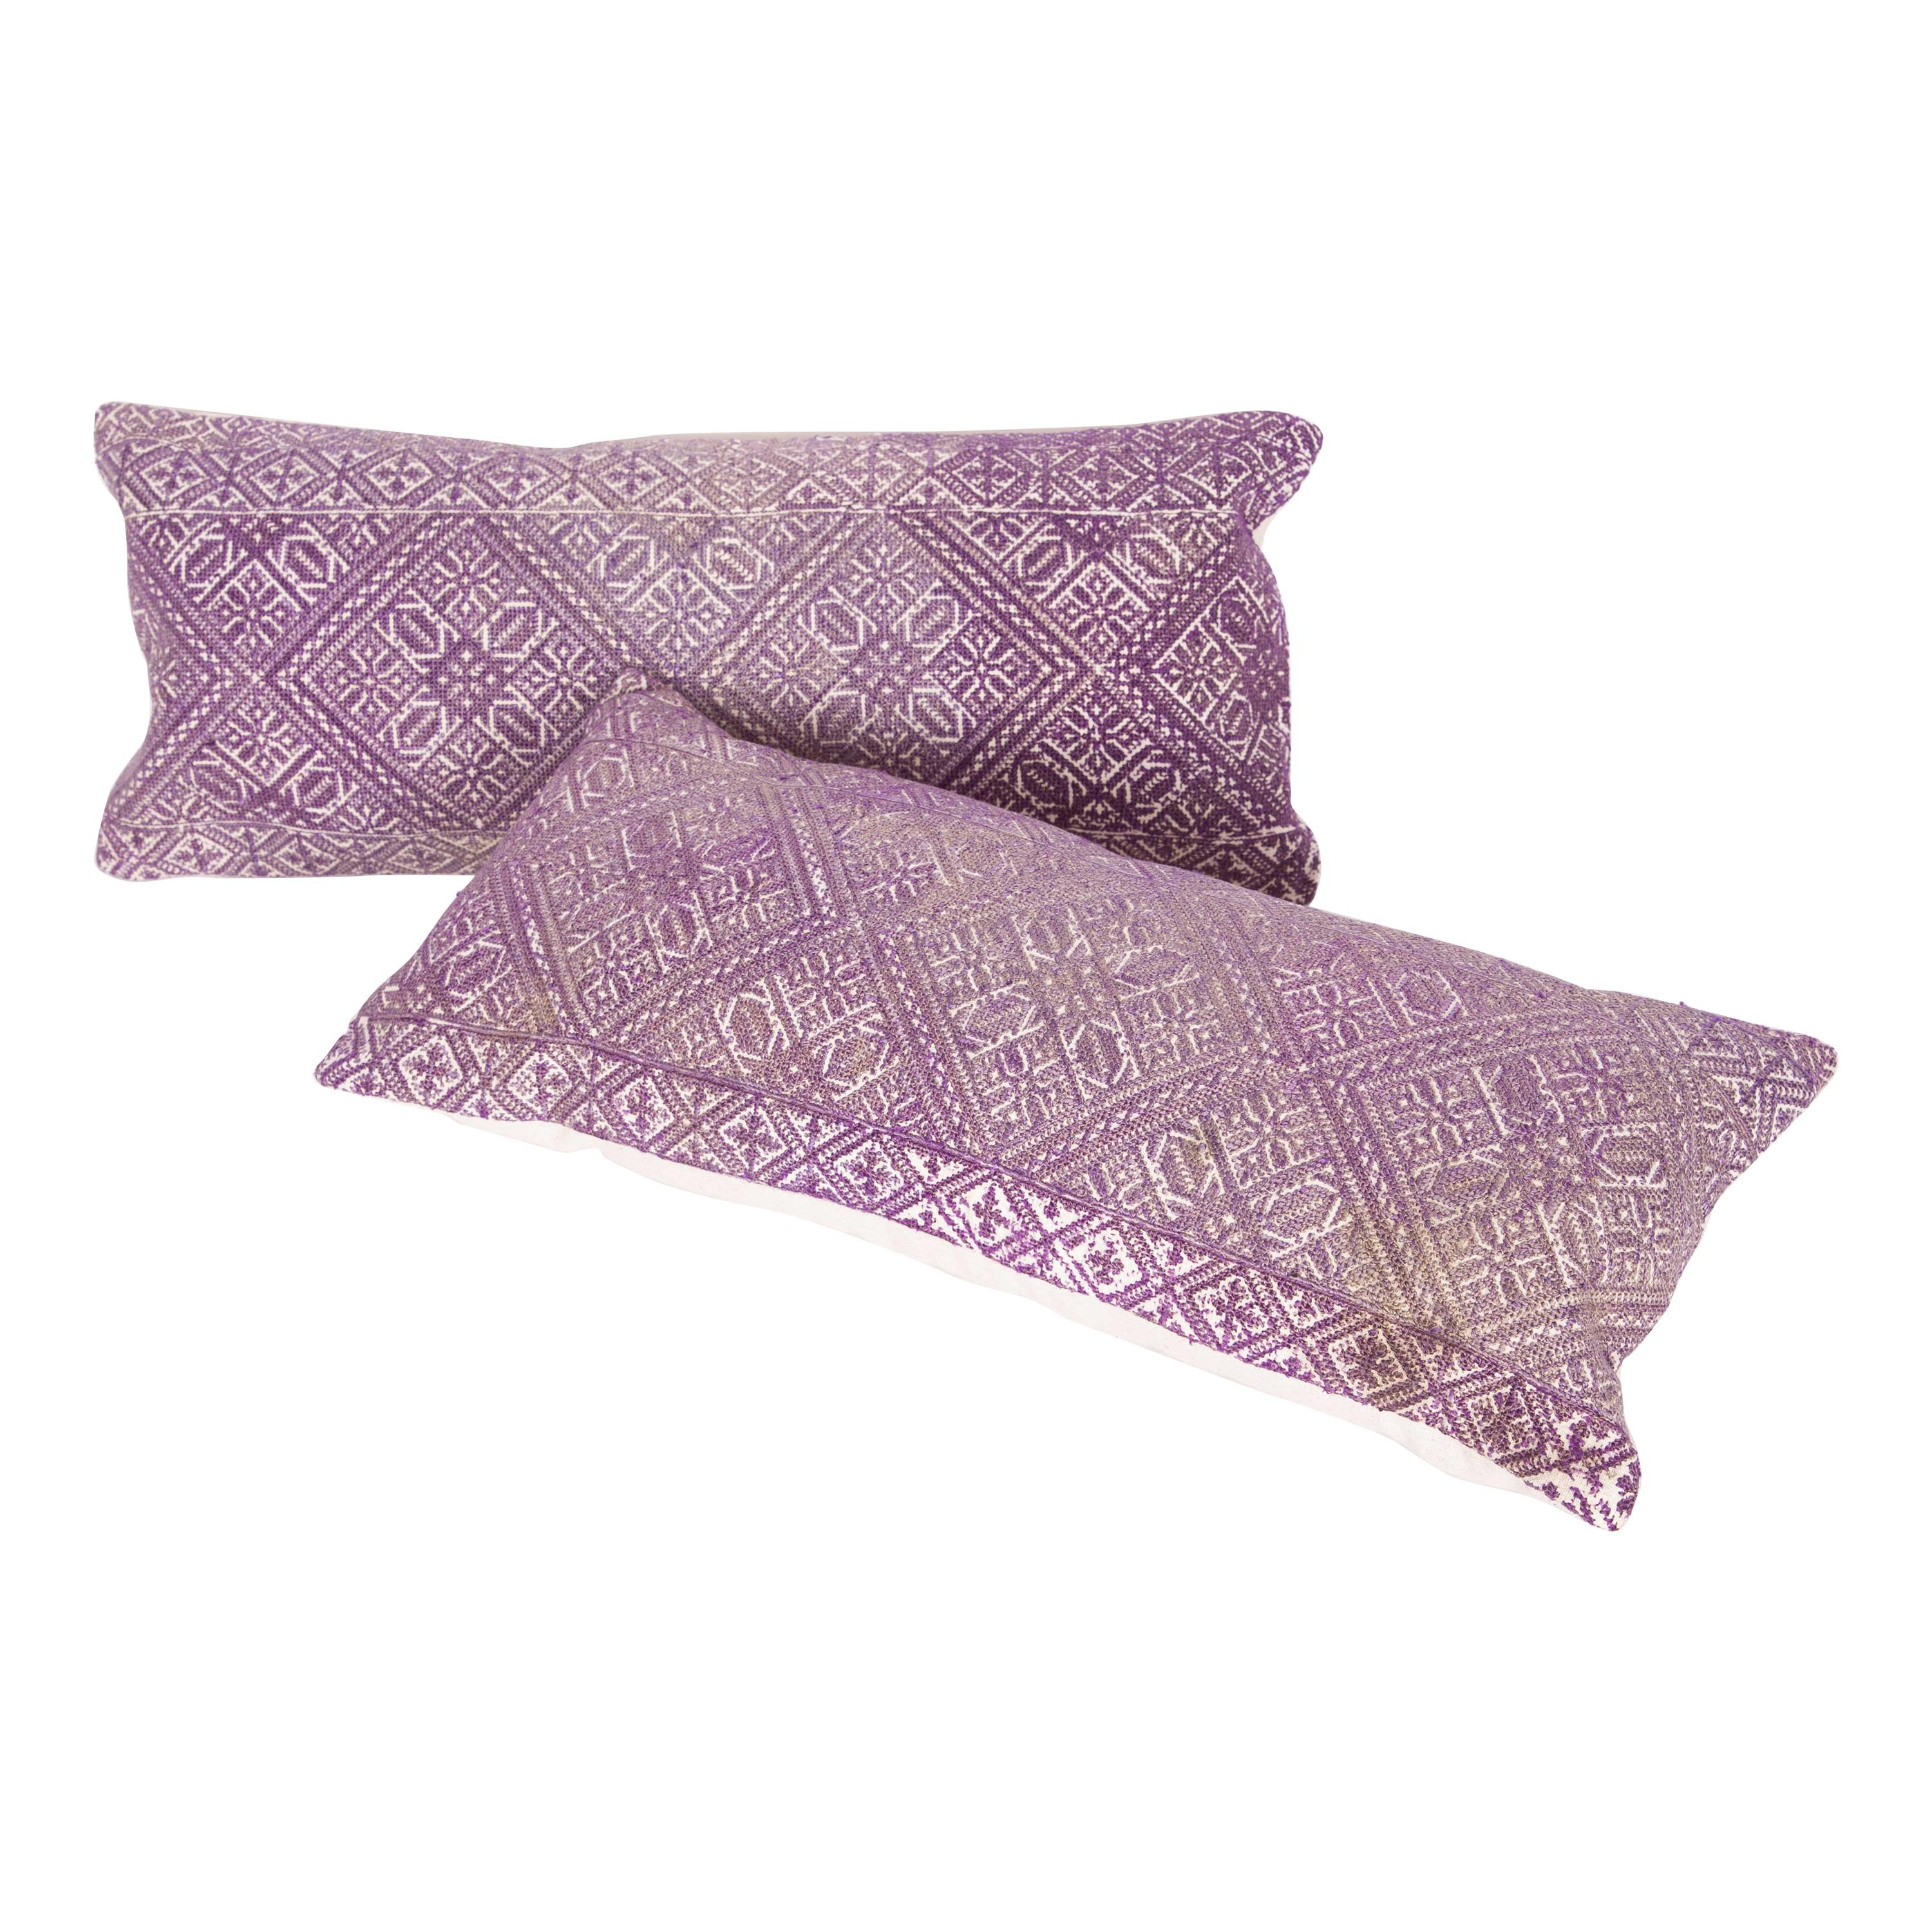 Antique Moroccan Pillow Cases Fashioned from a Fez Embroidery Early 20th Century